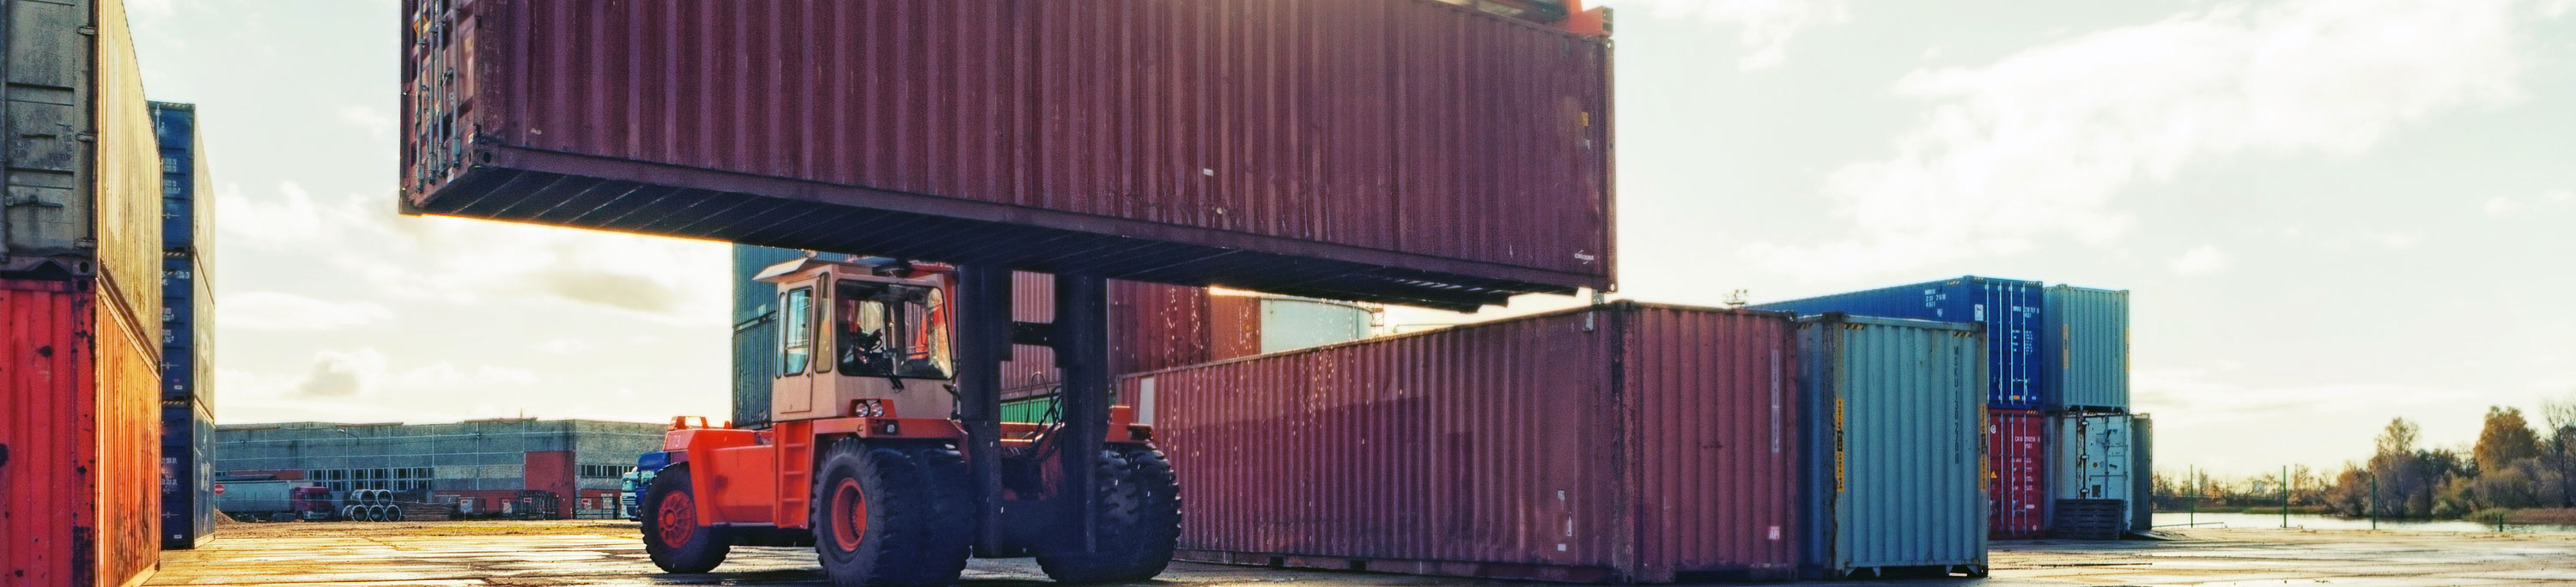 header-container